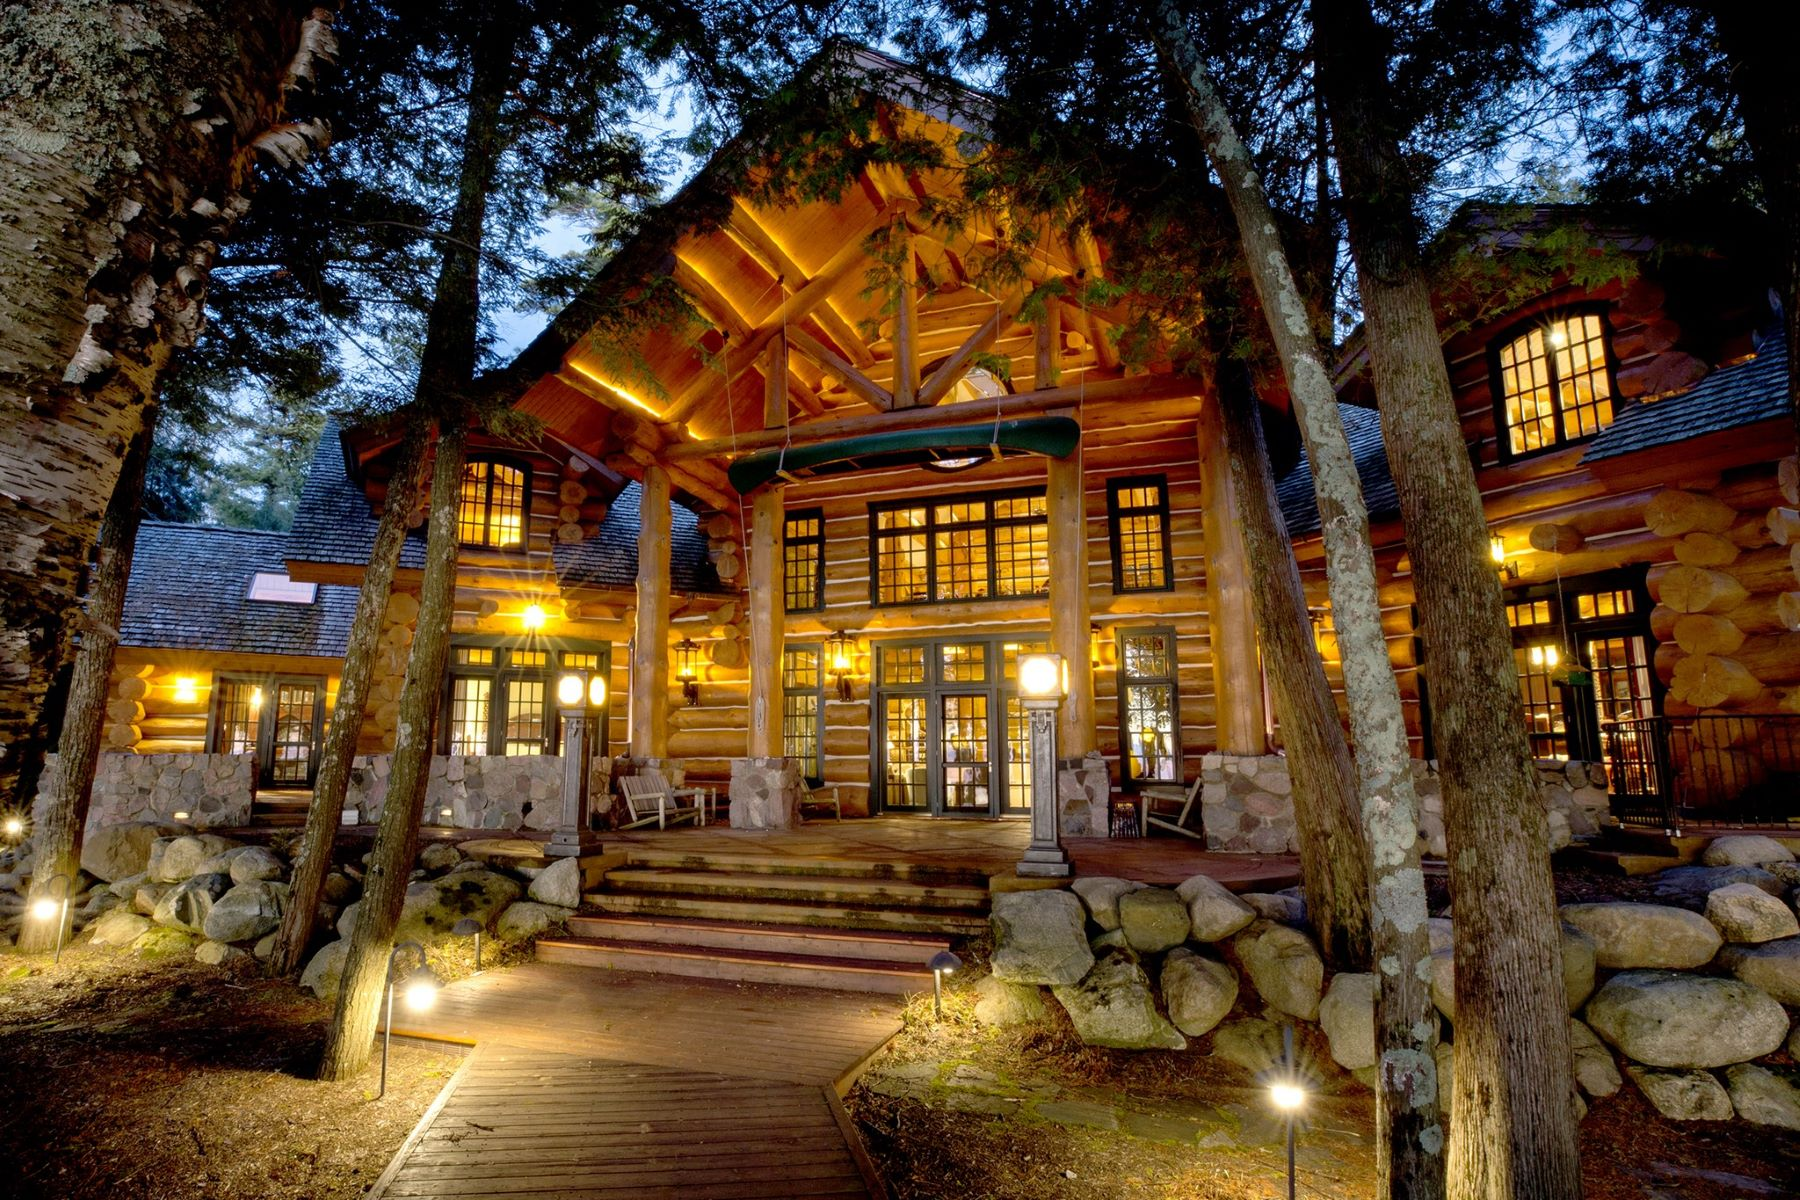 Single Family Homes for Active at Stunning Lake Michigan Waterfront Log Home in Charlevoix, Michigan 11721 N. Pa Be Shan Trail Charlevoix, Michigan 49720 United States